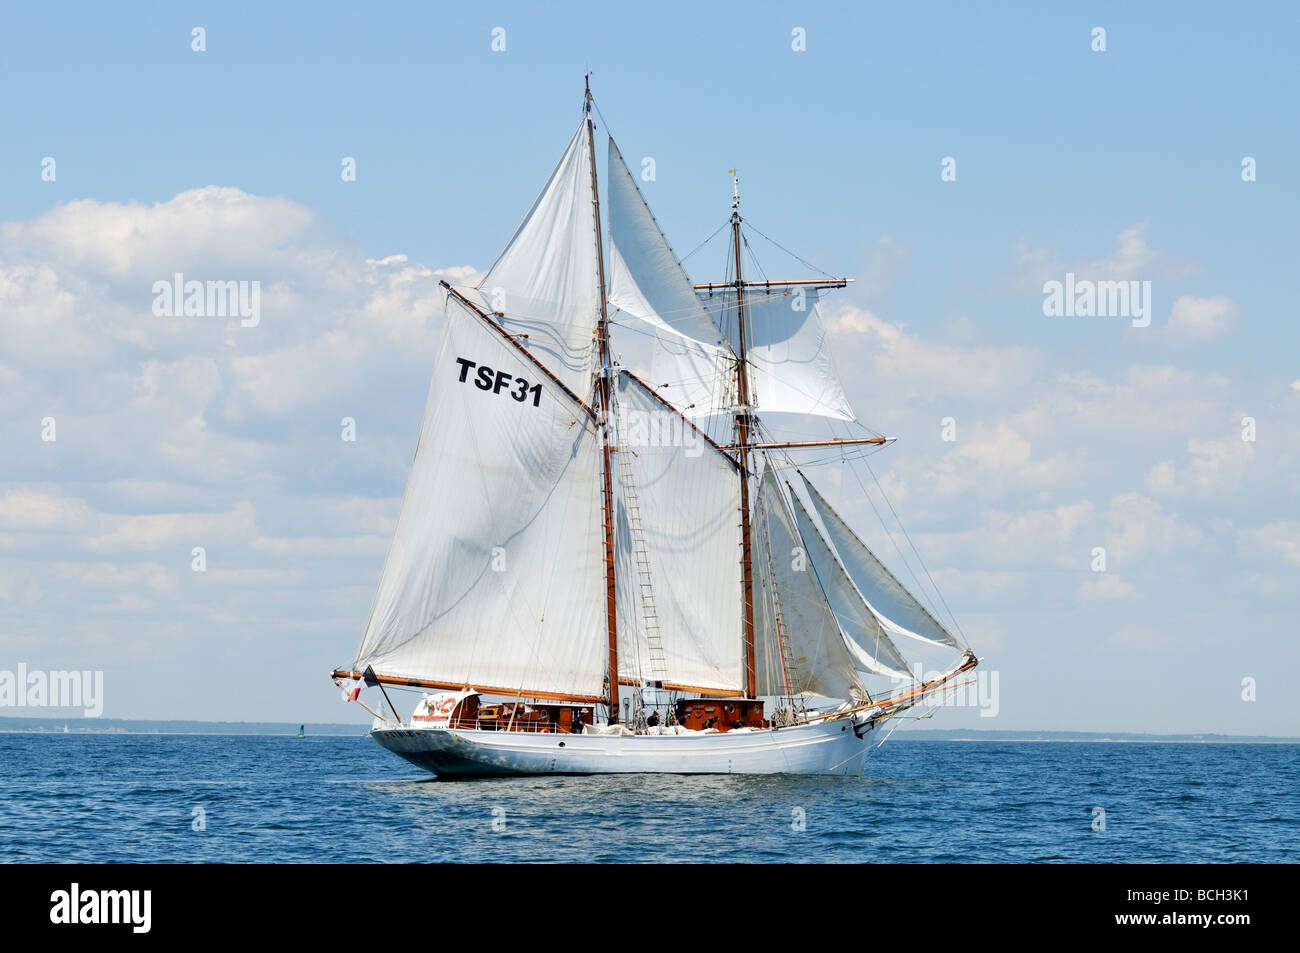 French tall ship Etoile a gaff rigged schooner under full sail - Stock Image